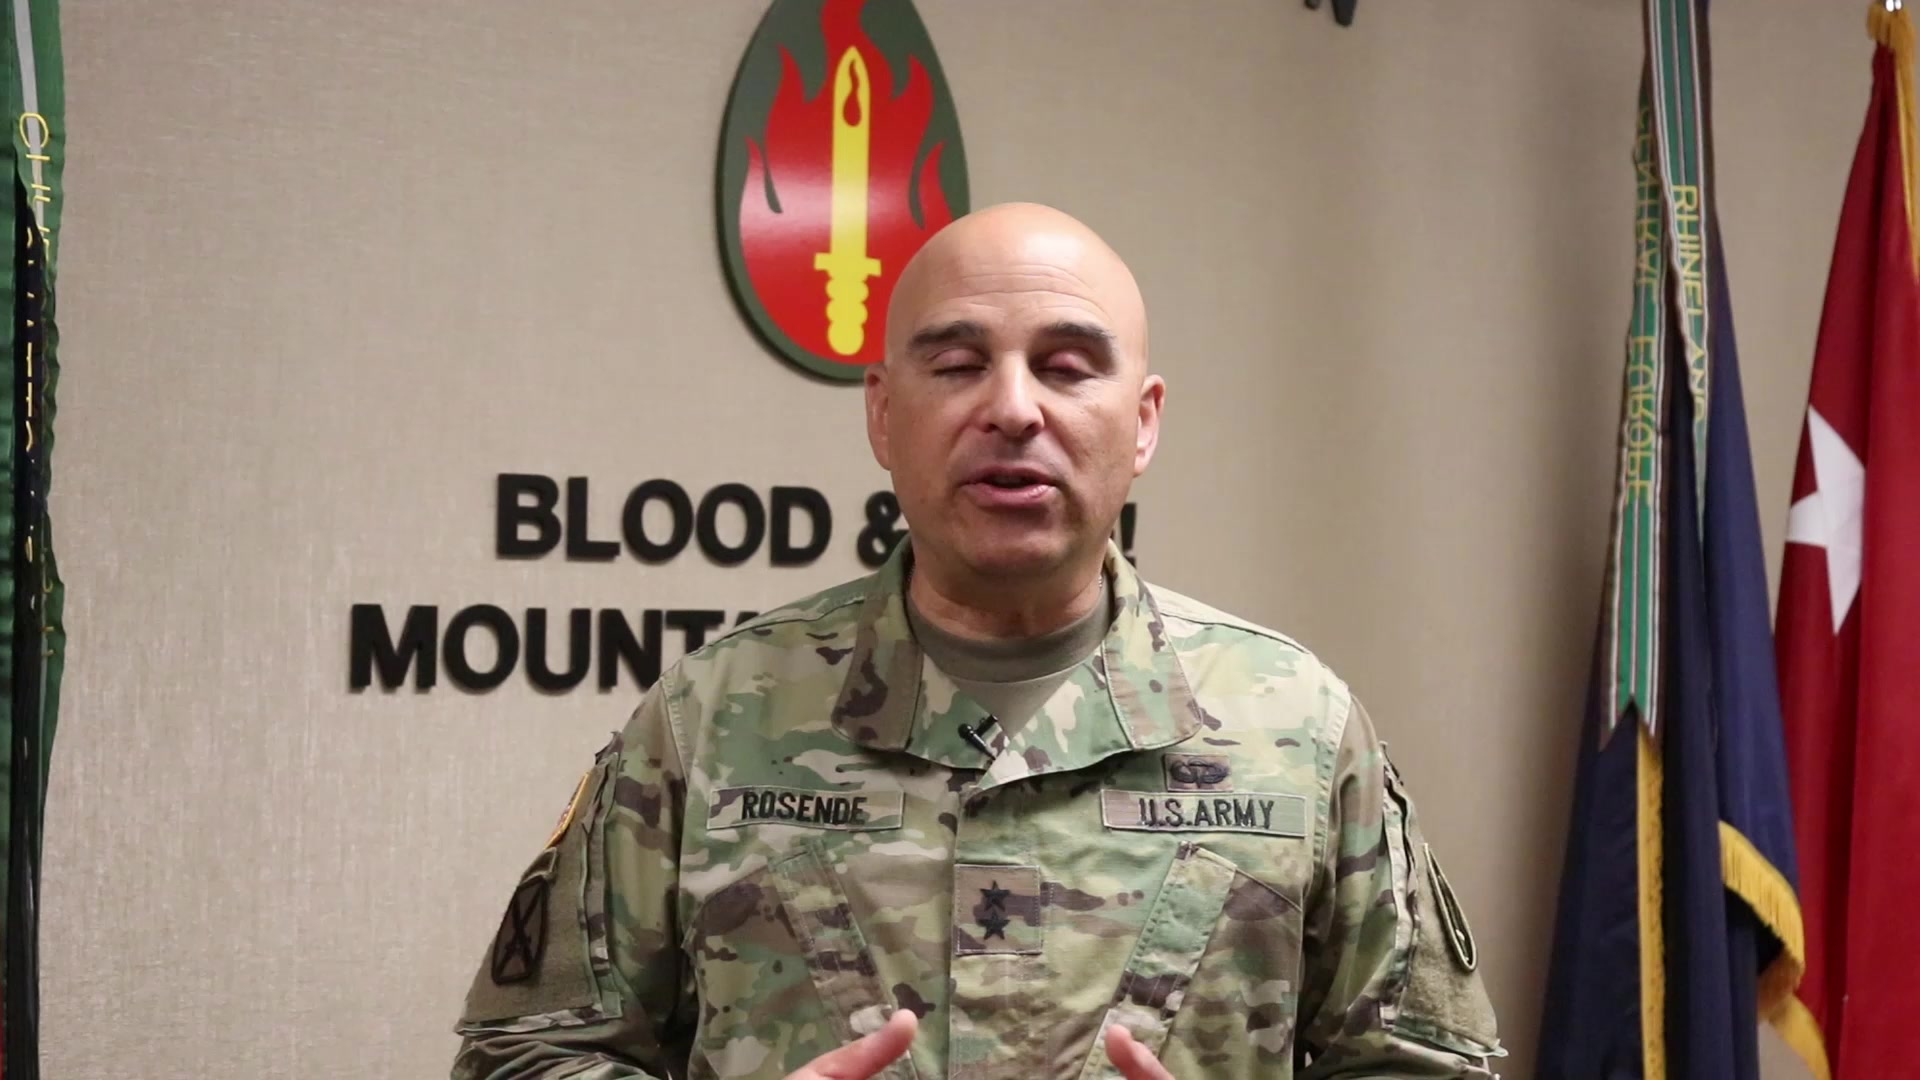 Maj. Gen. Alberto Rosende, Commanding General of the 63rd Readiness Division, addresses Soldiers, civilians and families of the 63rd Readiness Division about personal safety and prevention measures that should be taken to mitigate the spread of COVID-19.